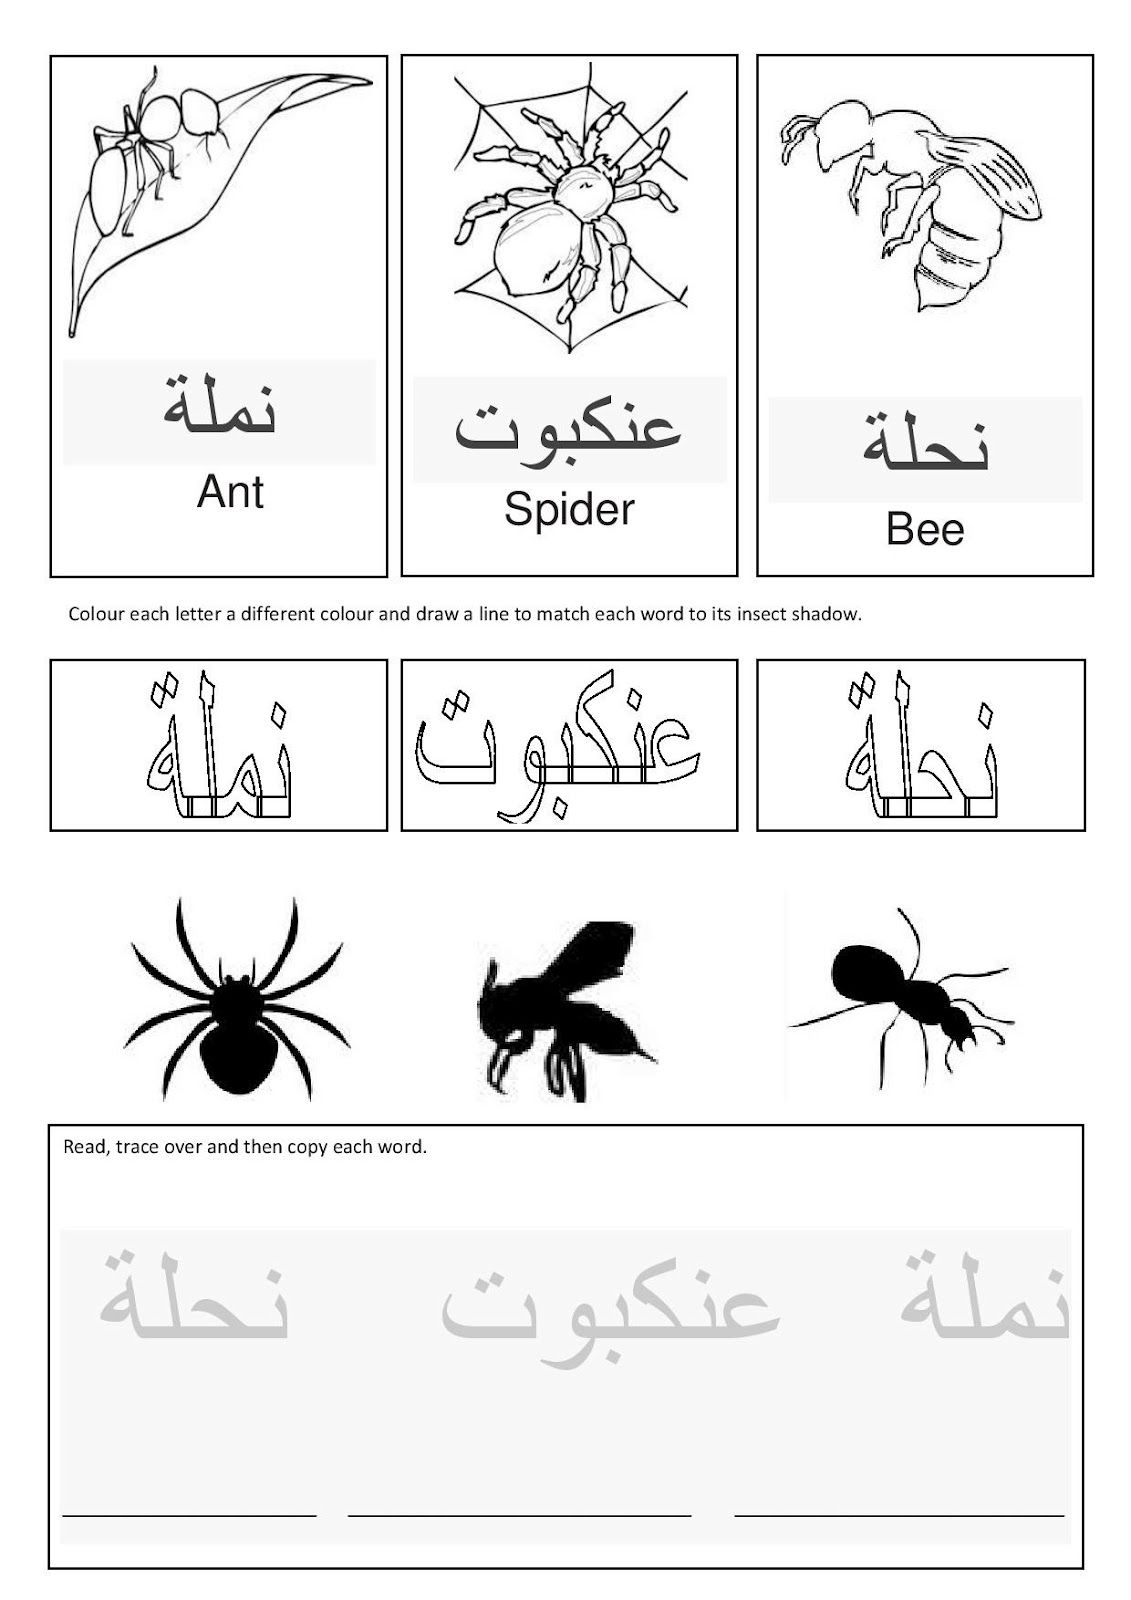 arabic insects free templates links and more islamic studies arabic calligraphy. Black Bedroom Furniture Sets. Home Design Ideas